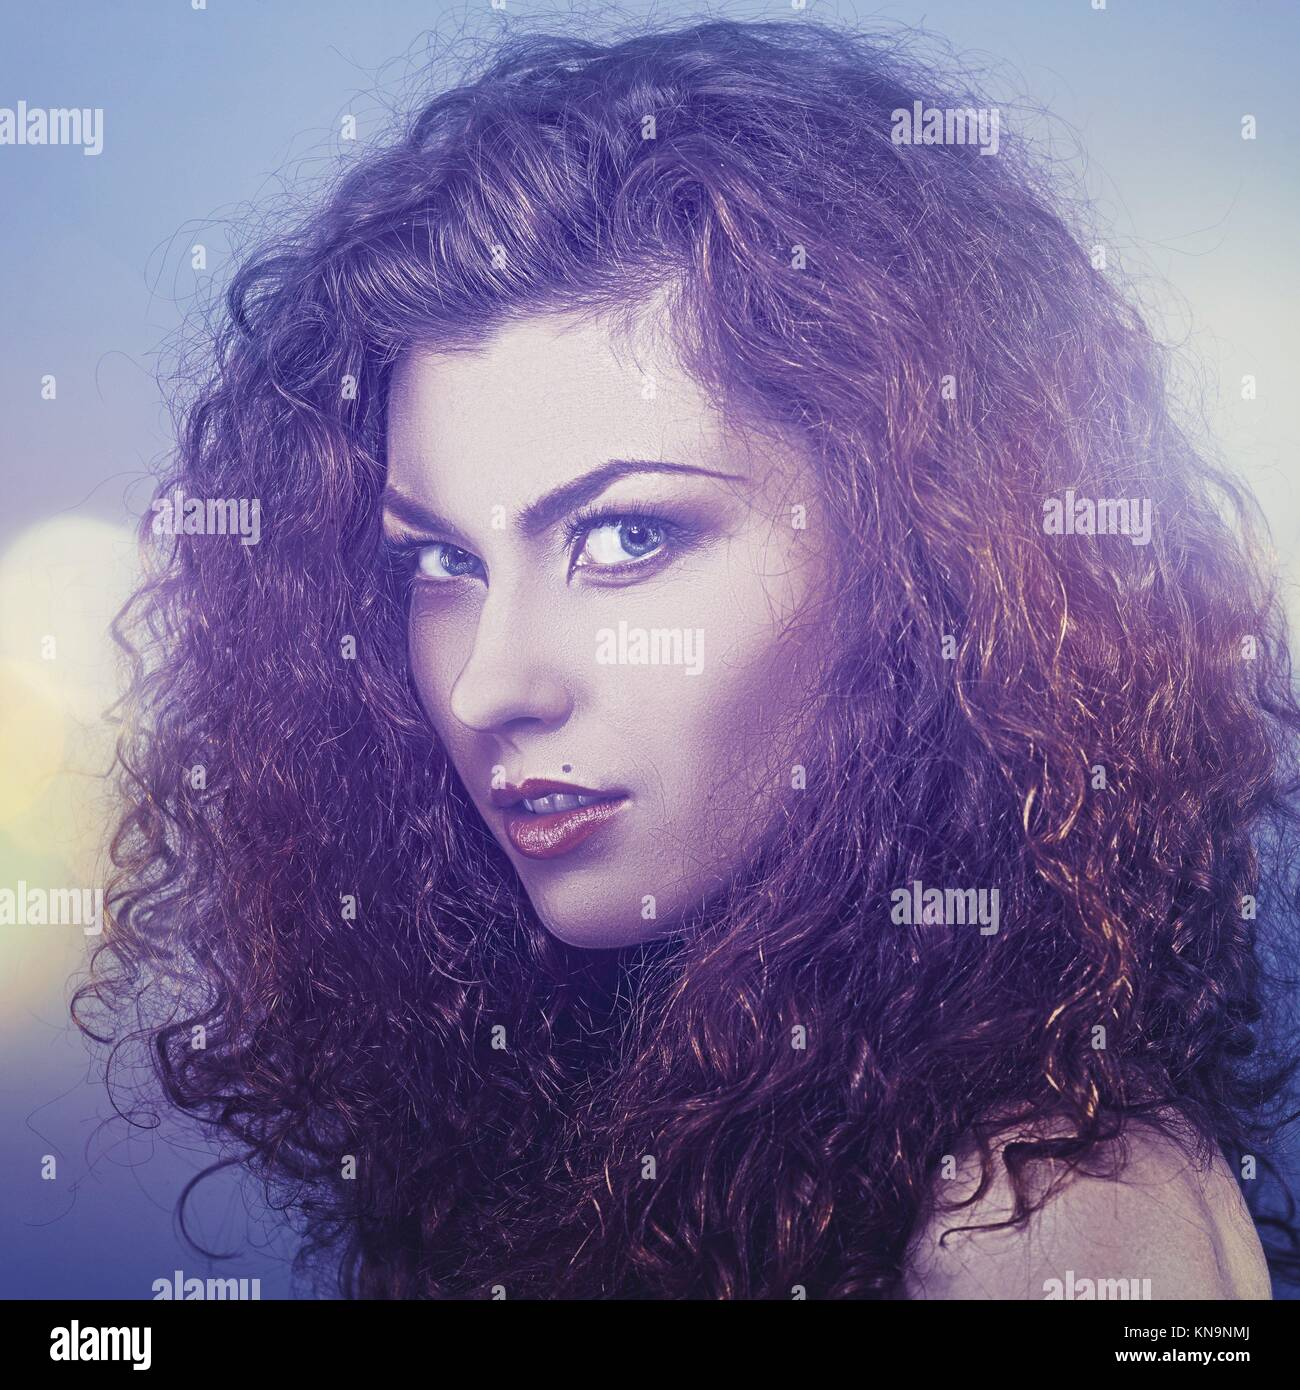 Beauty in the darkness, female fashionable portrait. - Stock Image